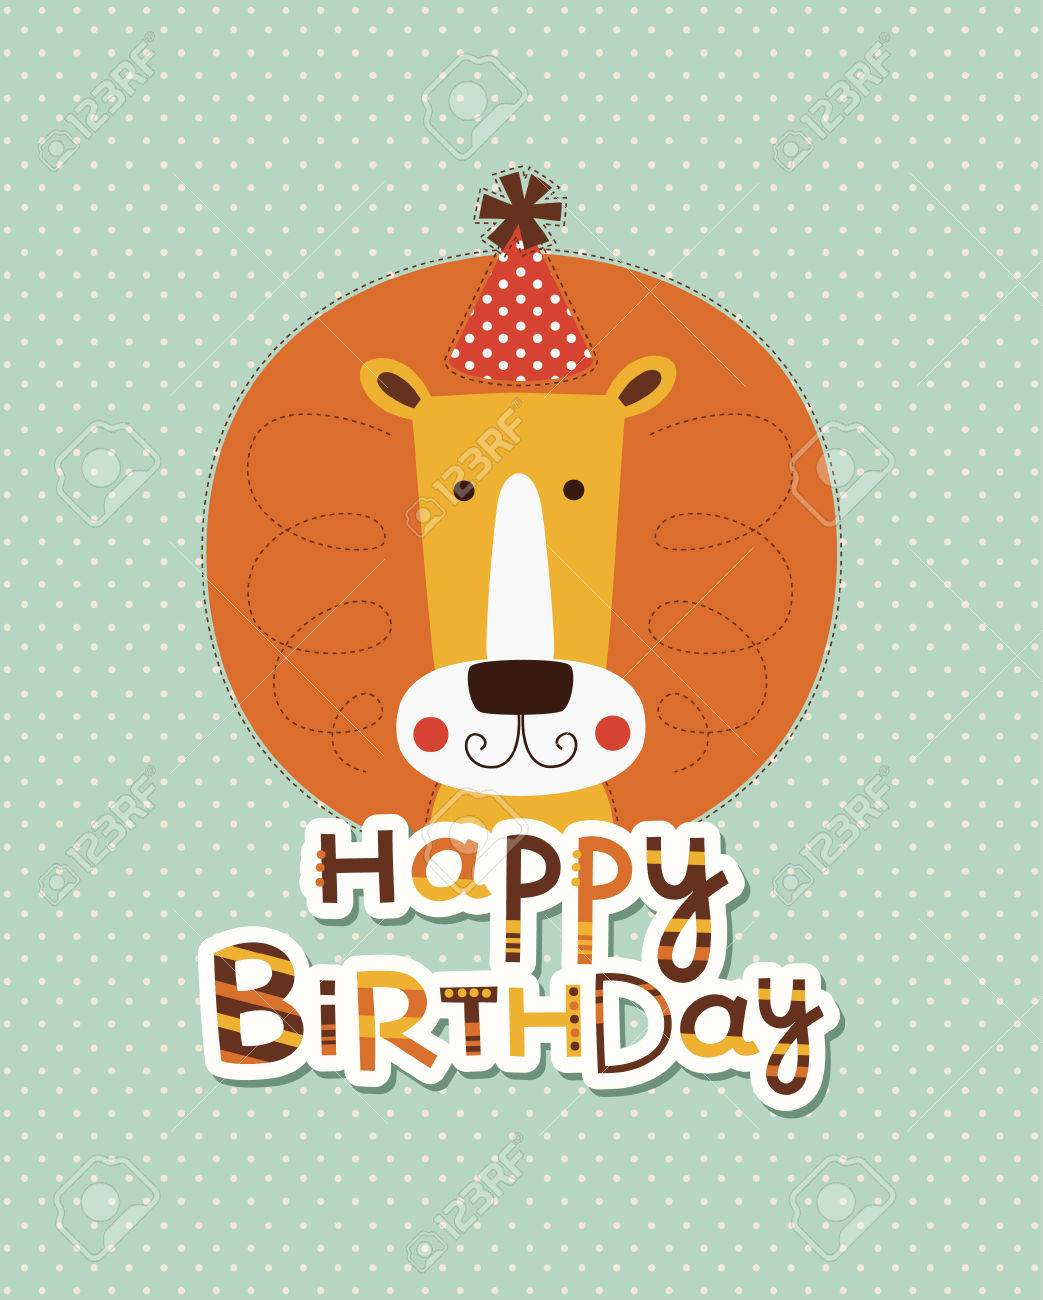 Cute Happy Birthday Card Design Vector Illustration Royalty Free – Cool Happy Birthday Cards